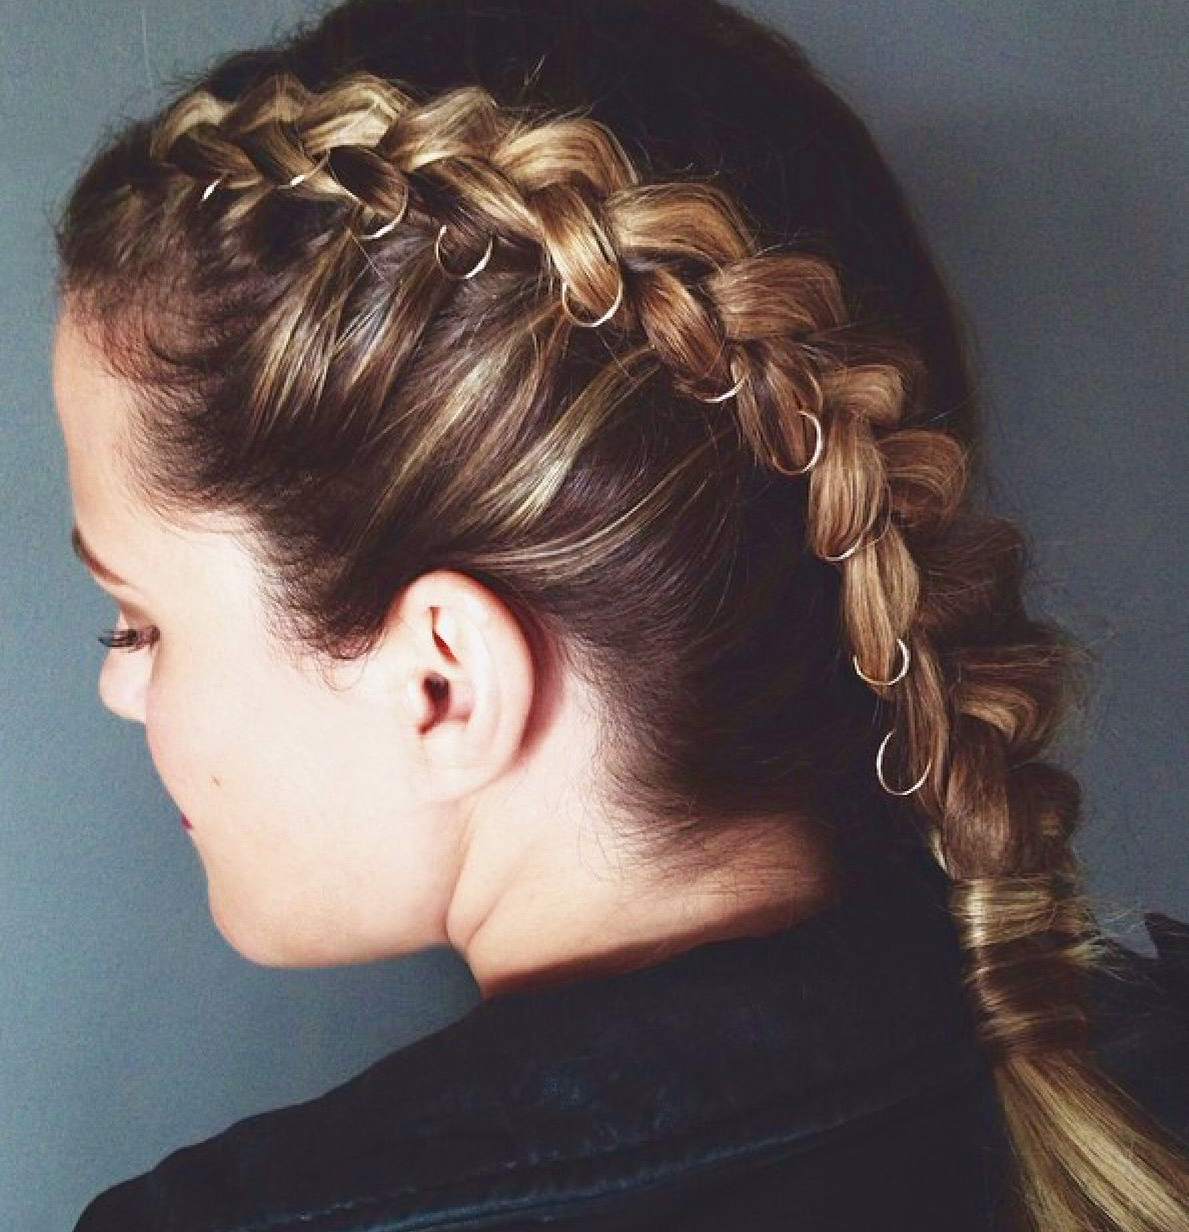 Hair Styles, Hair Inspiration Throughout Newest Hoop Embellished Braids Hairstyles (View 3 of 20)